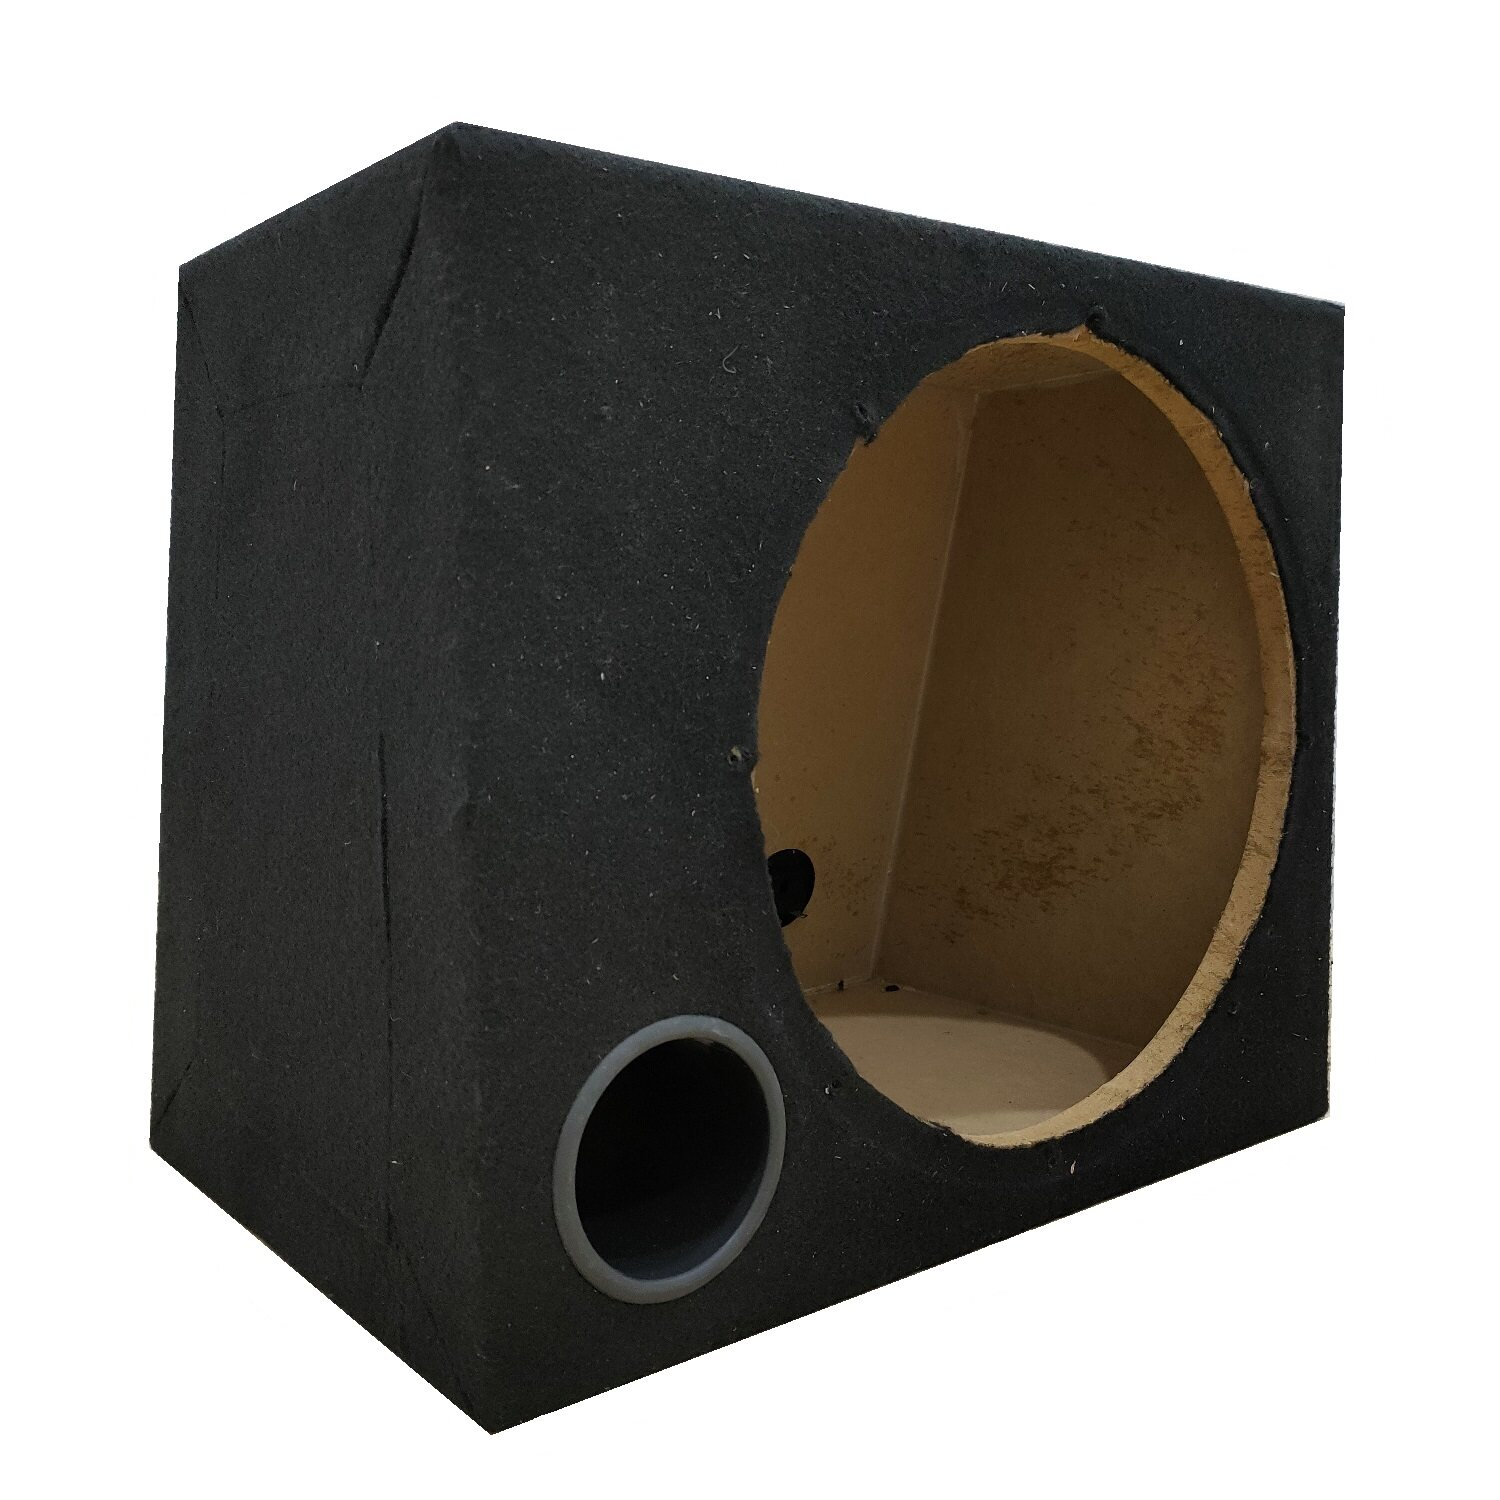 Woofer Box only good fit 12 Inch woofer box Empty box without woofer